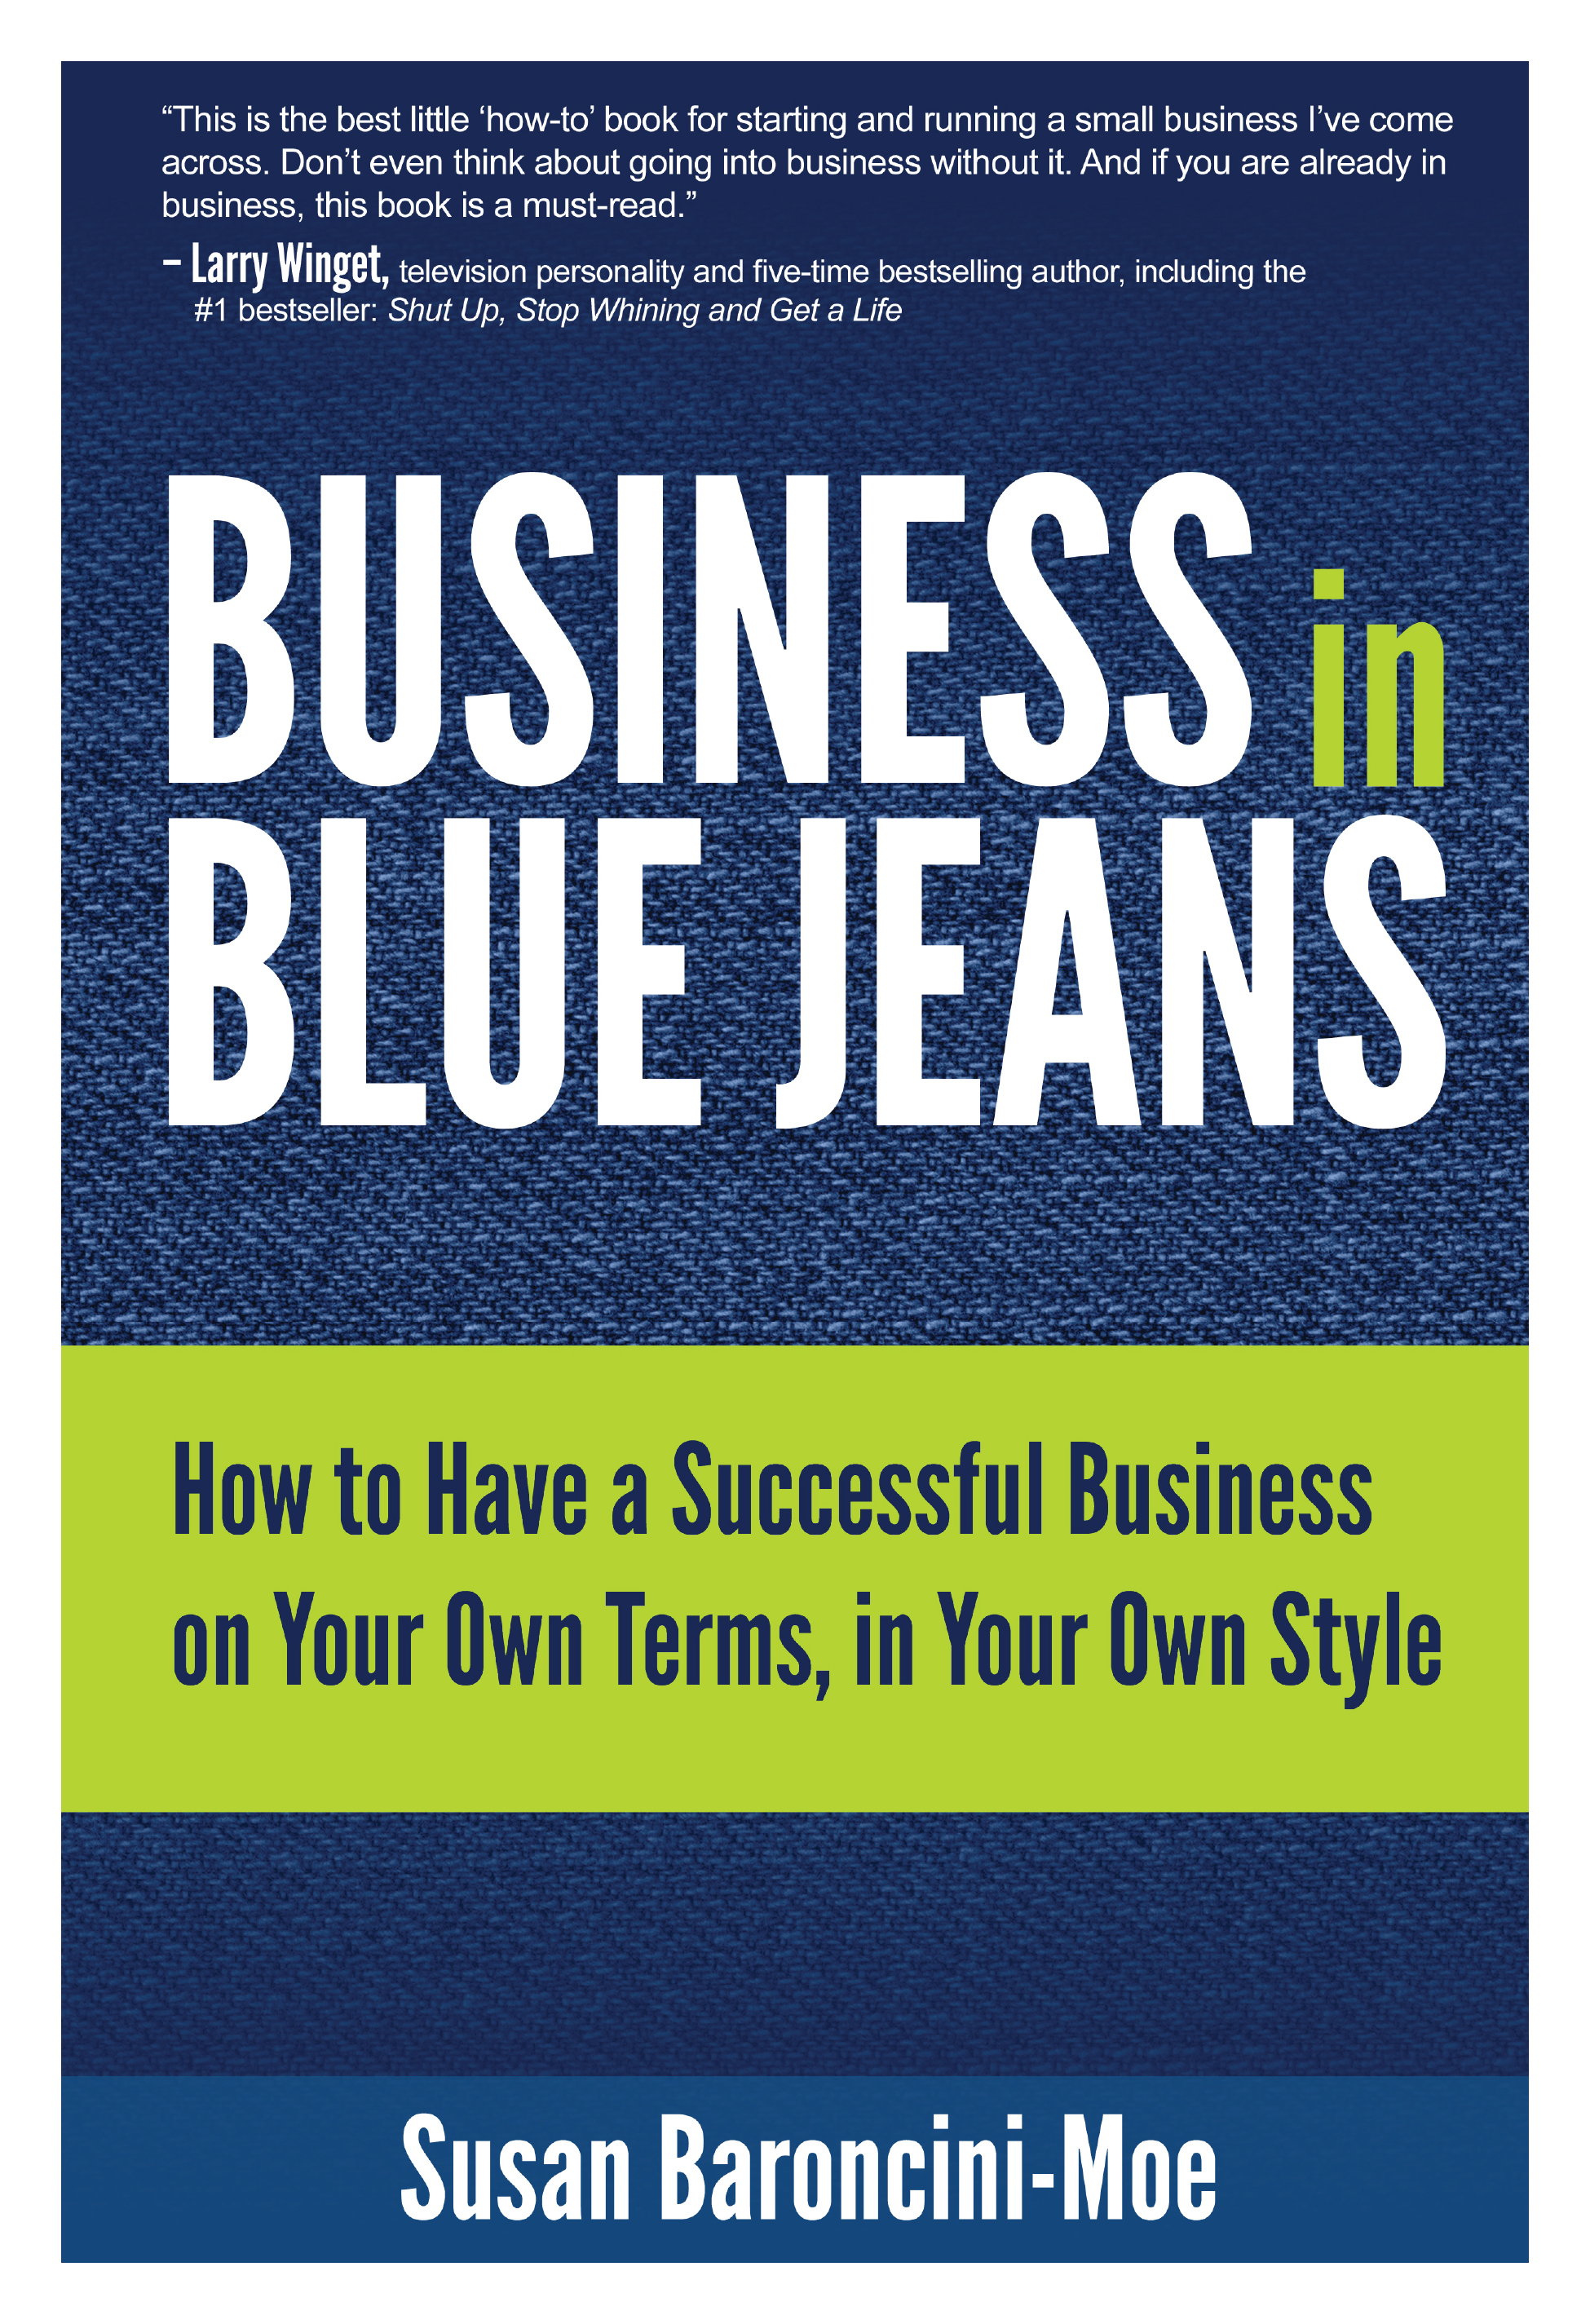 Business_in_Bluejeans.jpg